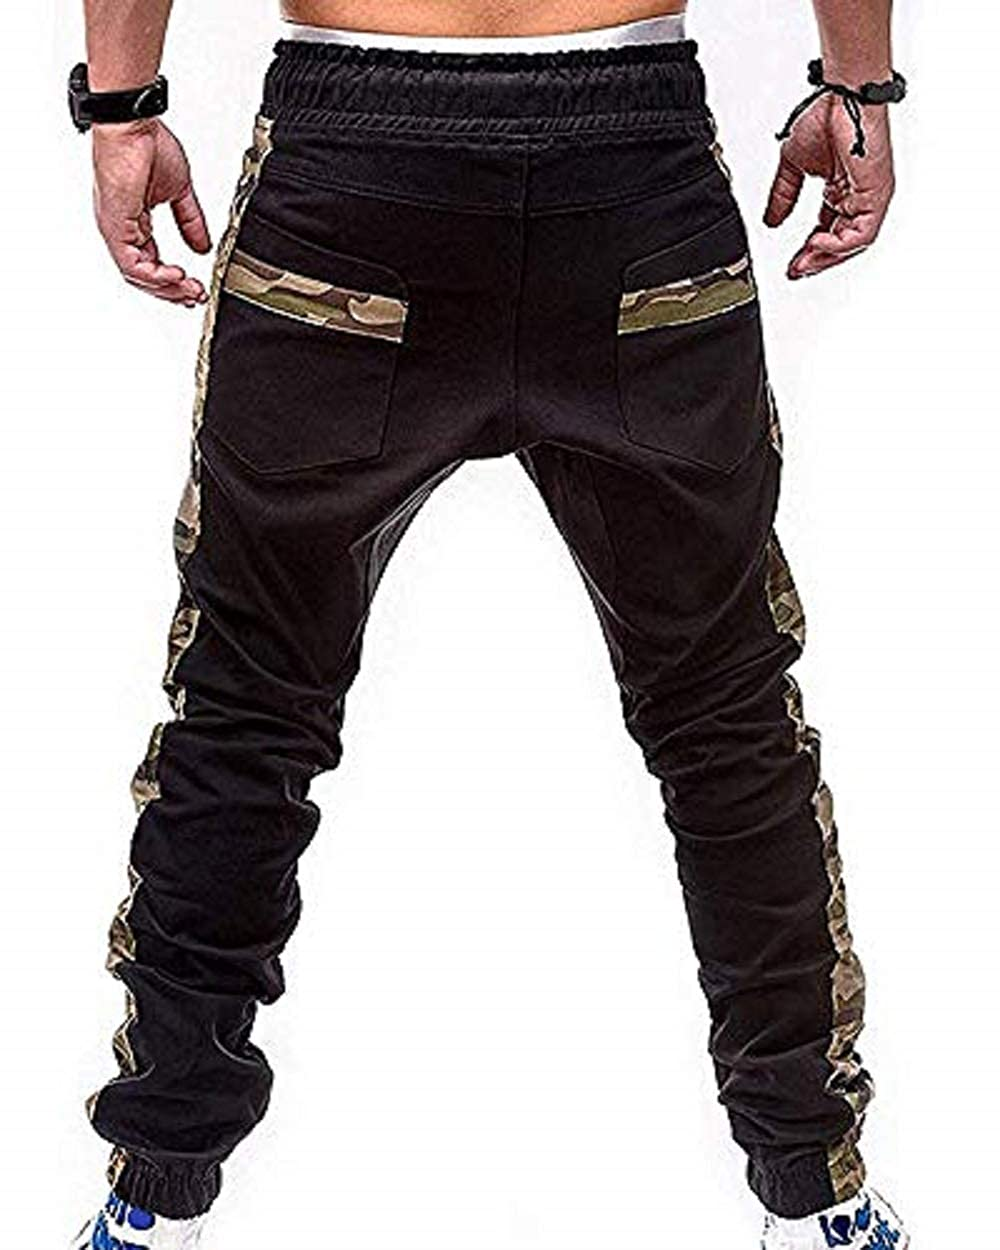 Percy Perry Mens Athletic Workout Sweatpants Casual Trousers